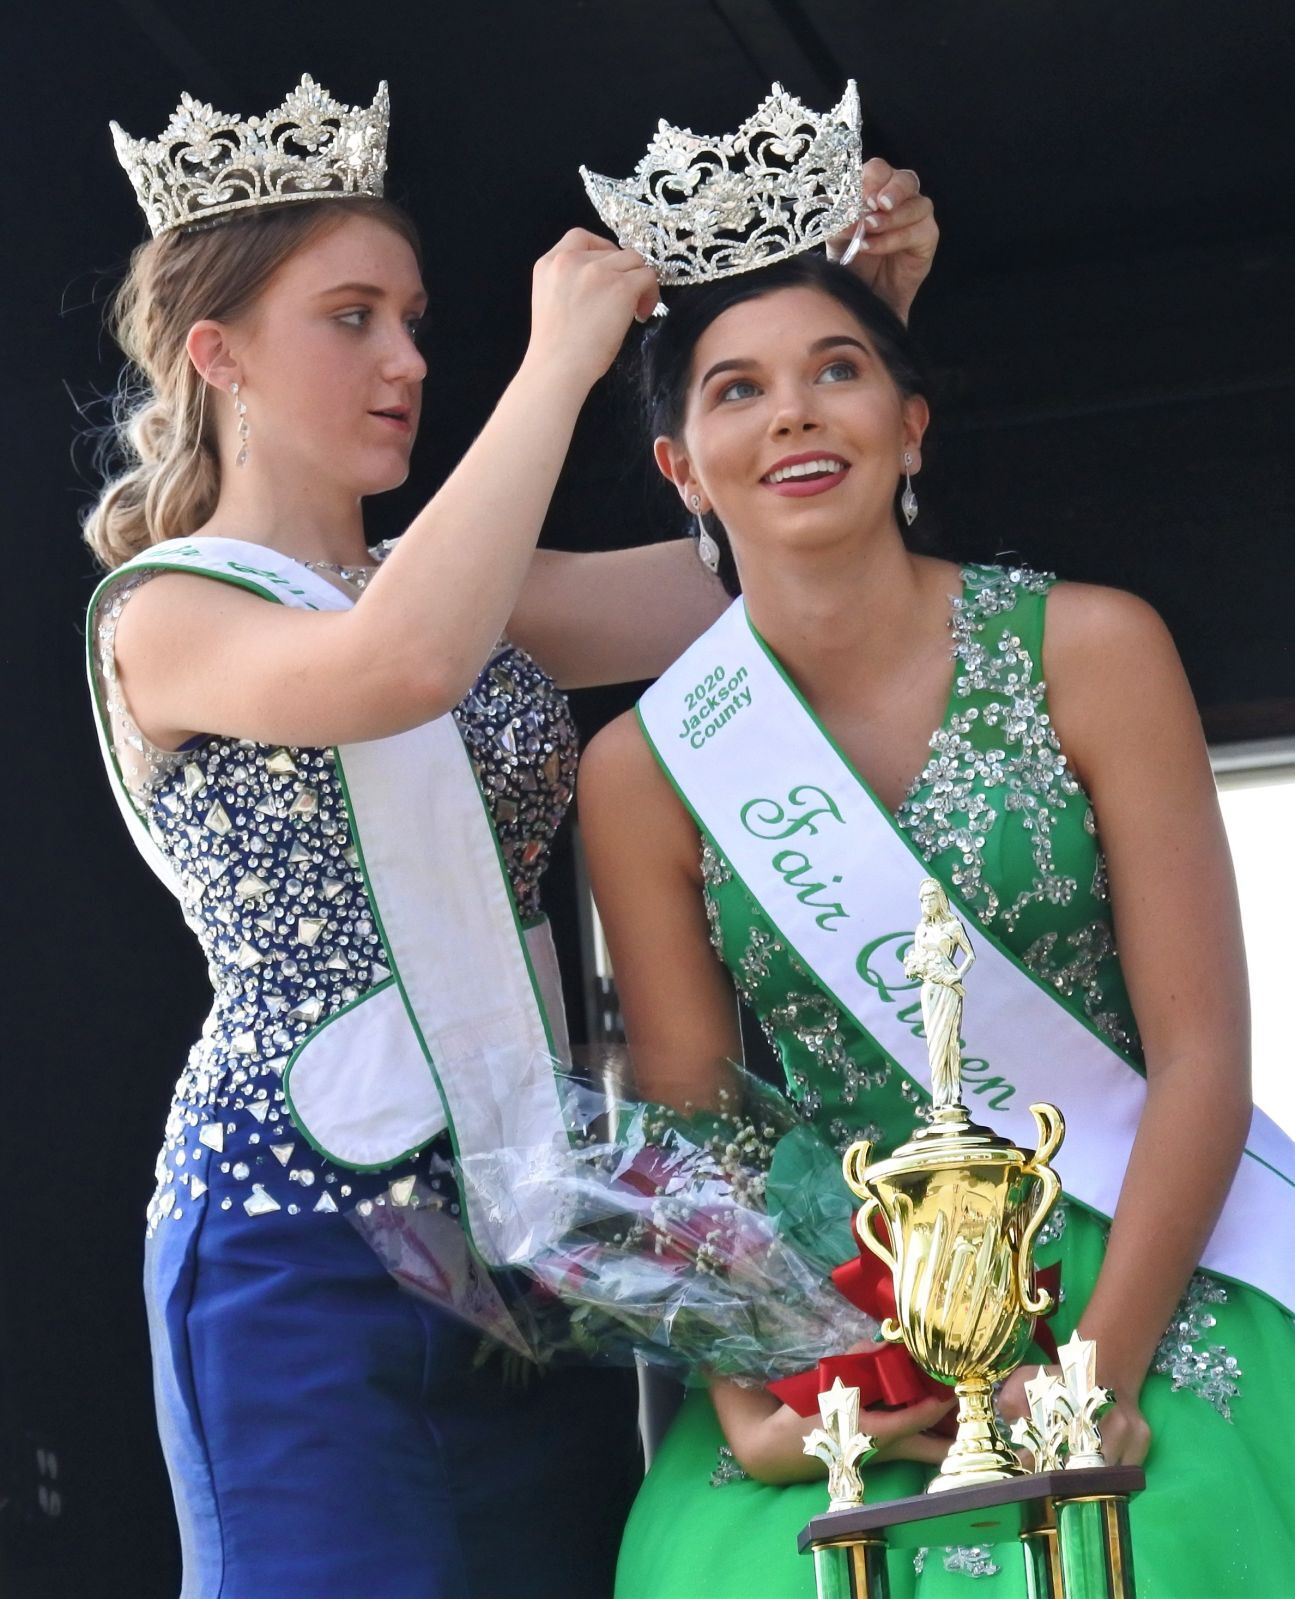 Crowning a new queen